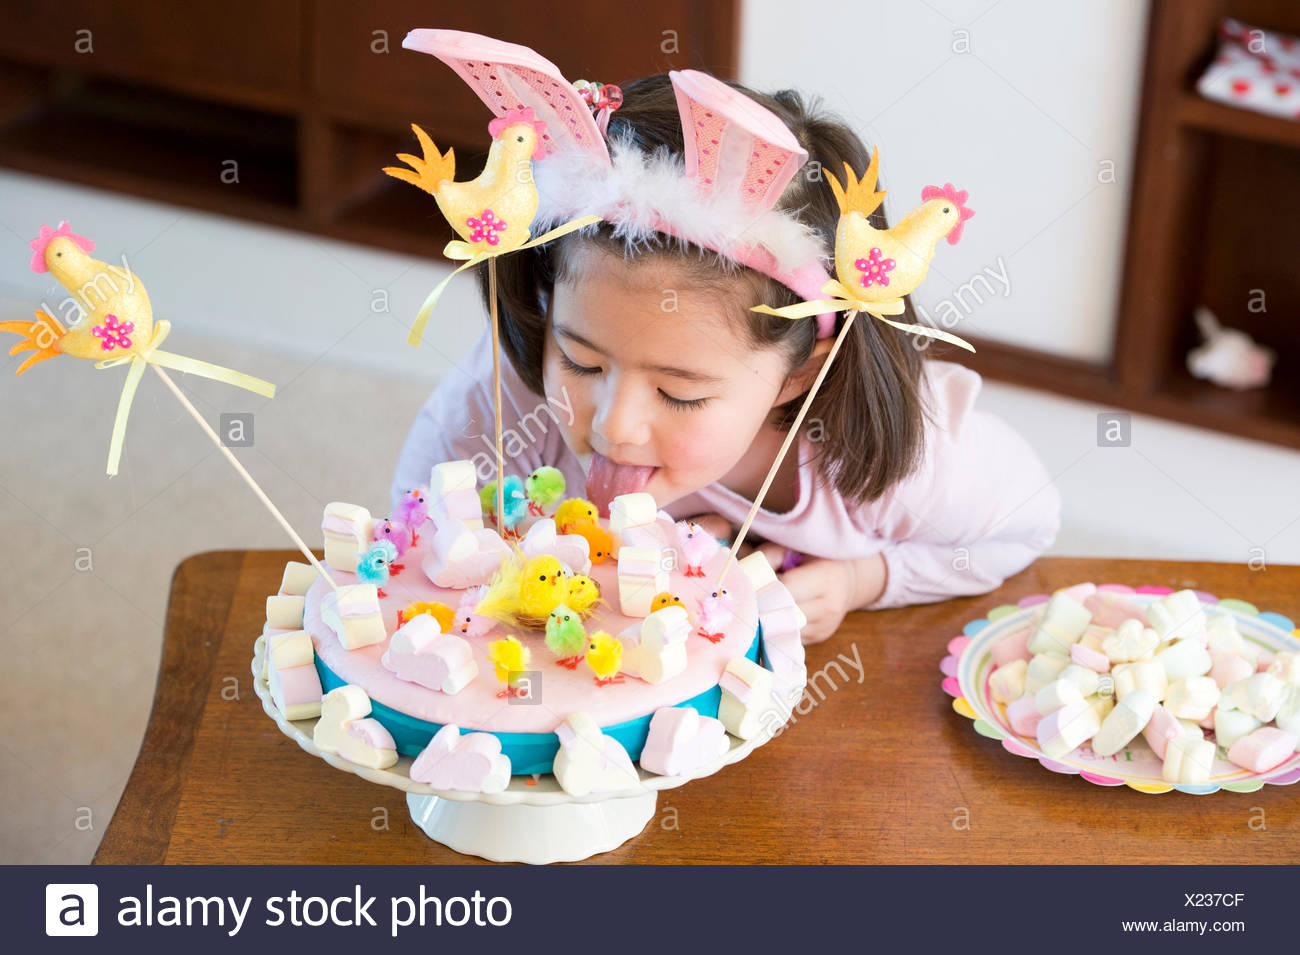 Young girl licking cake on table - Stock Image